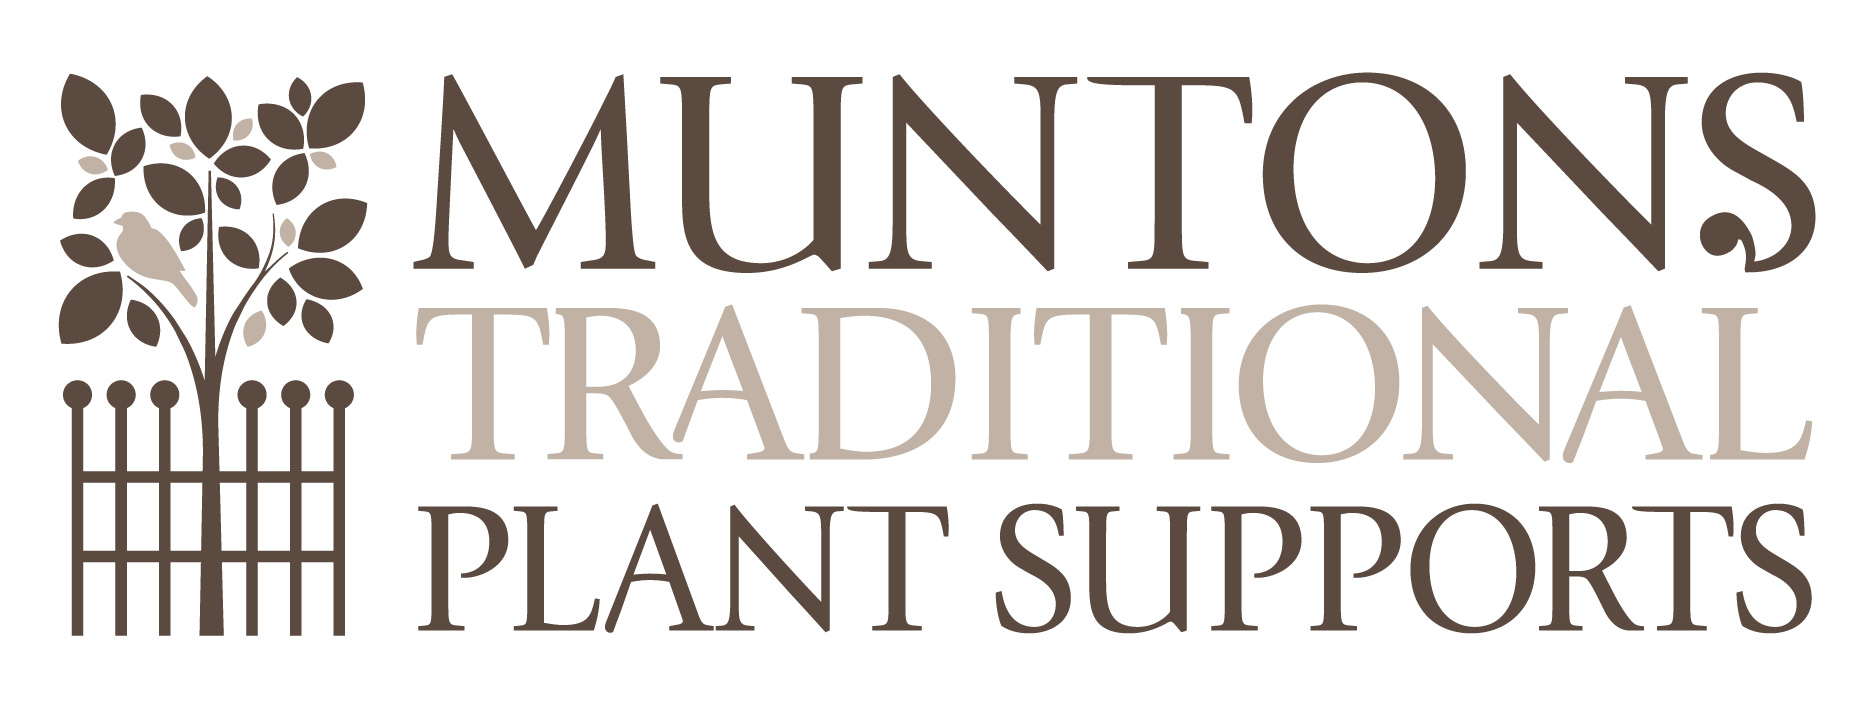 MUNTONS TRADITIONAL PLANT SUPPORTS LTD